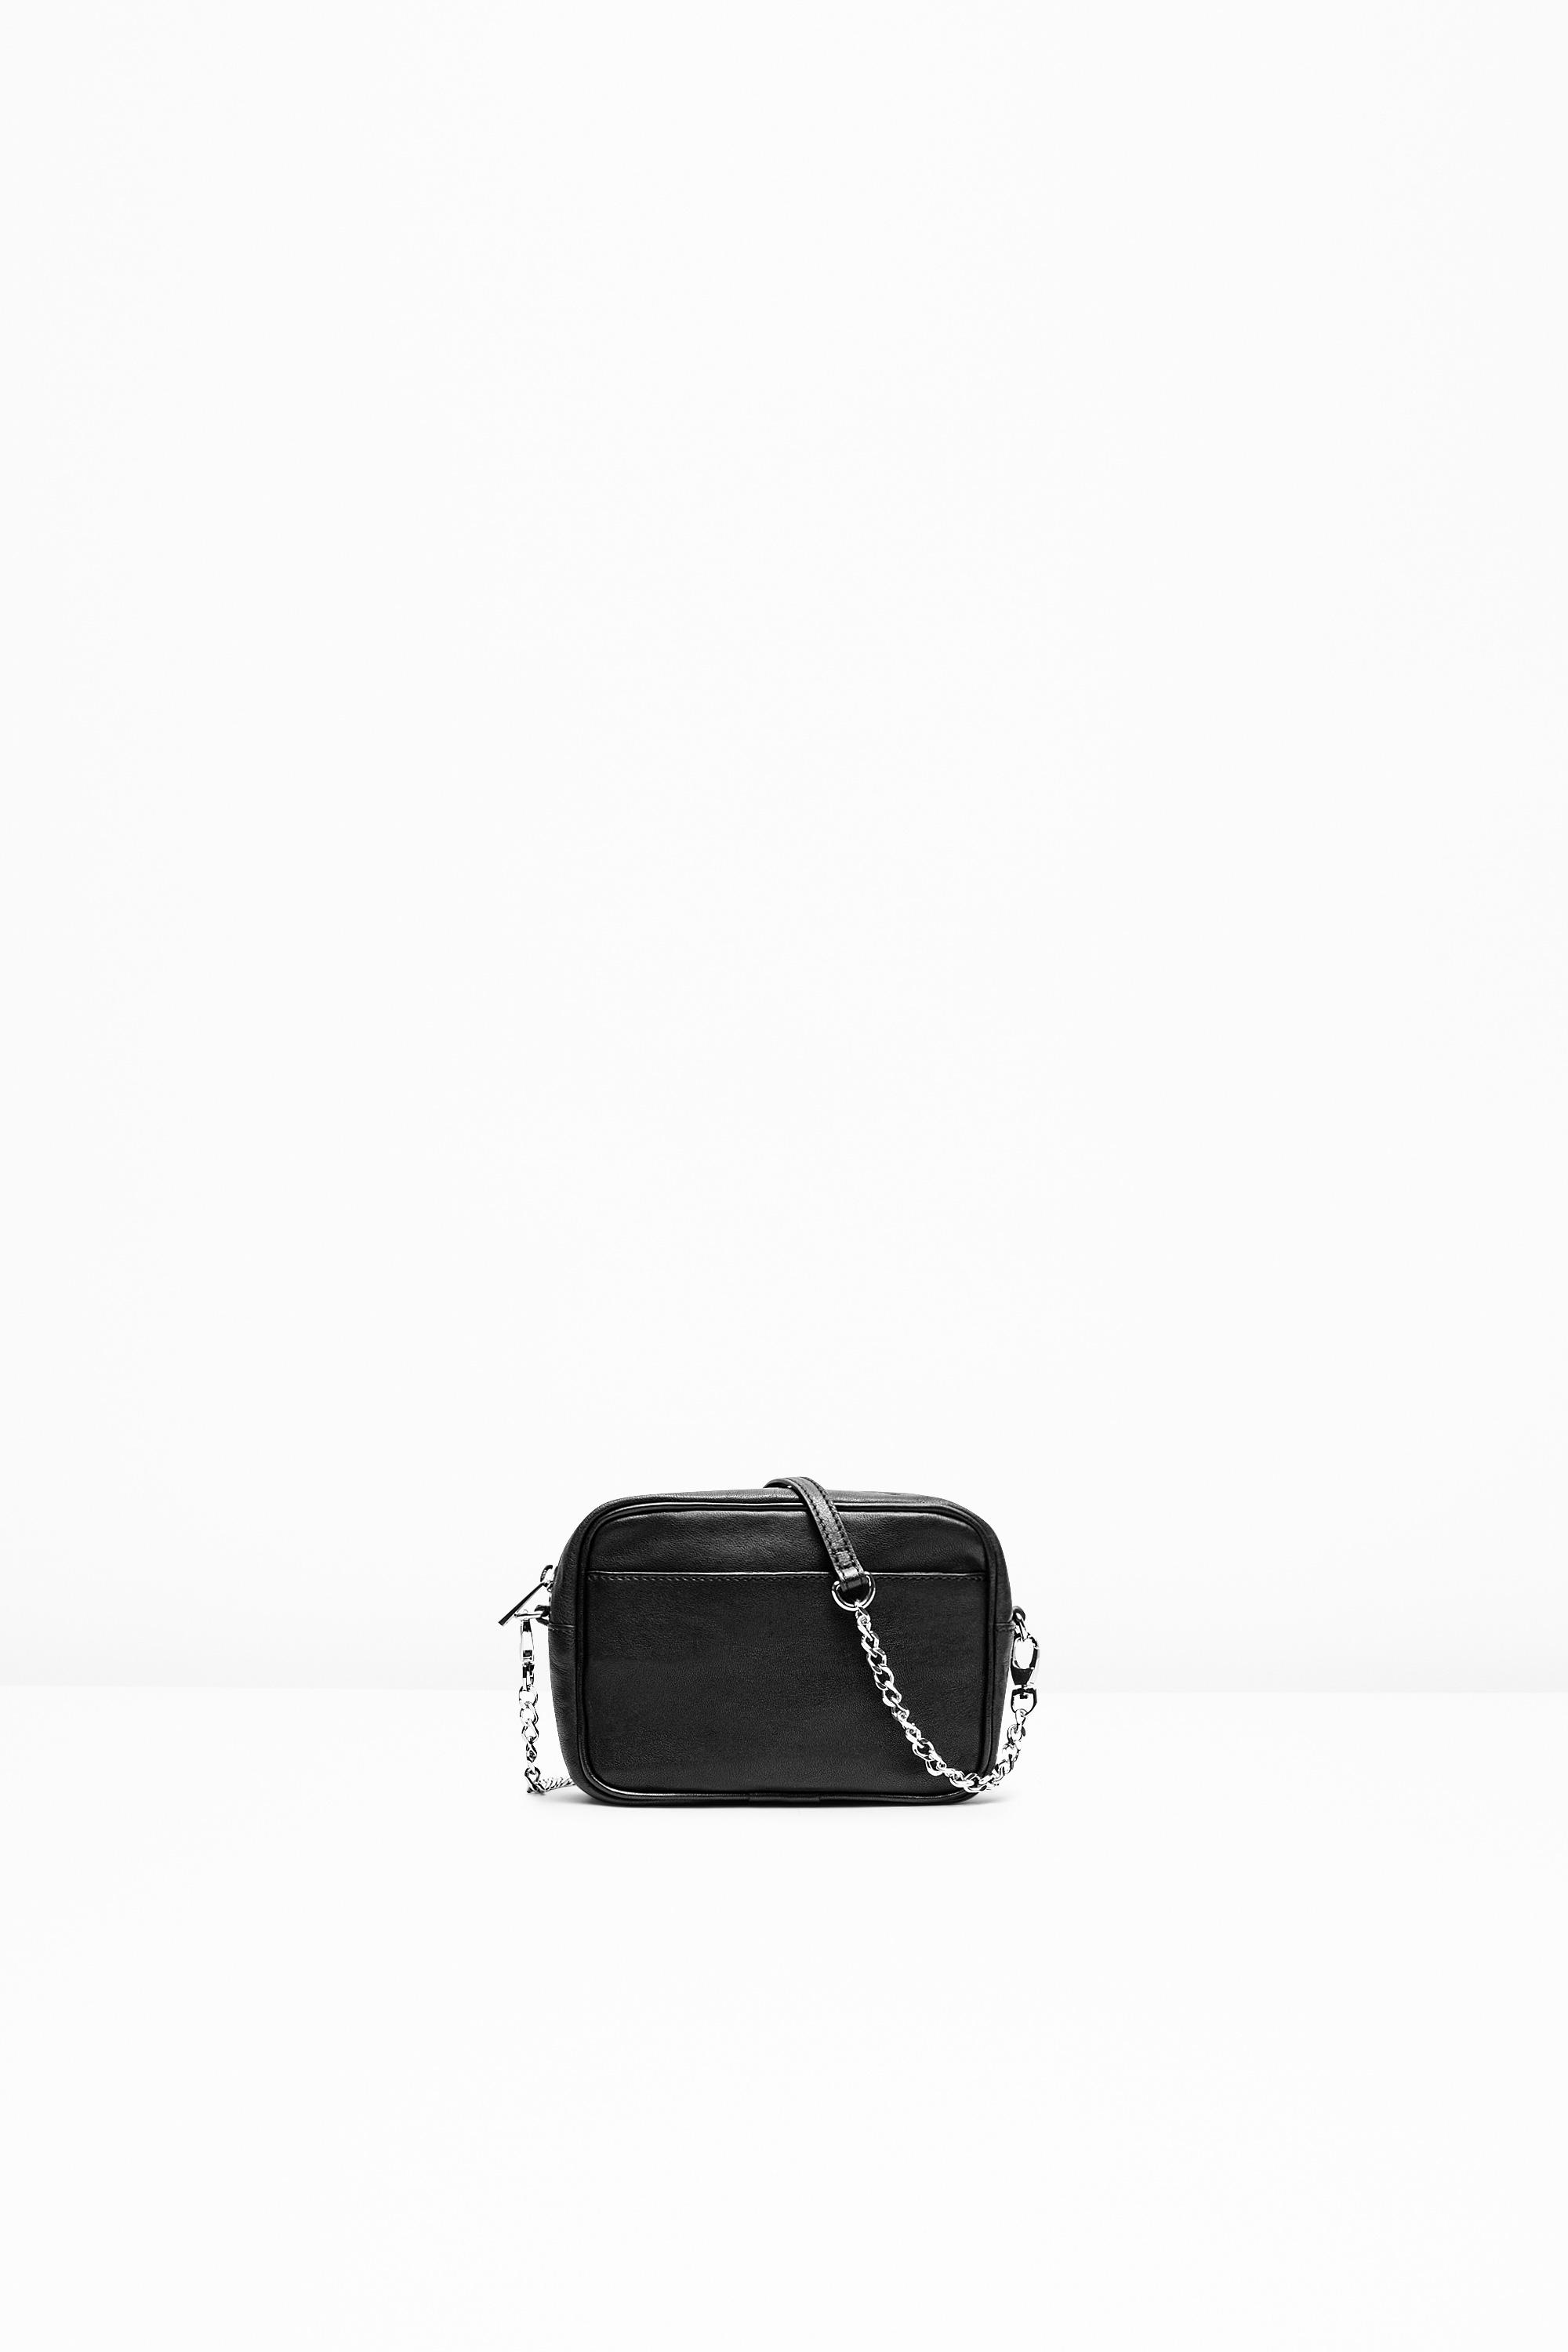 Lyst - Zadig   Voltaire Xs Boxy Boho Bag in Black f3d687f8150f6